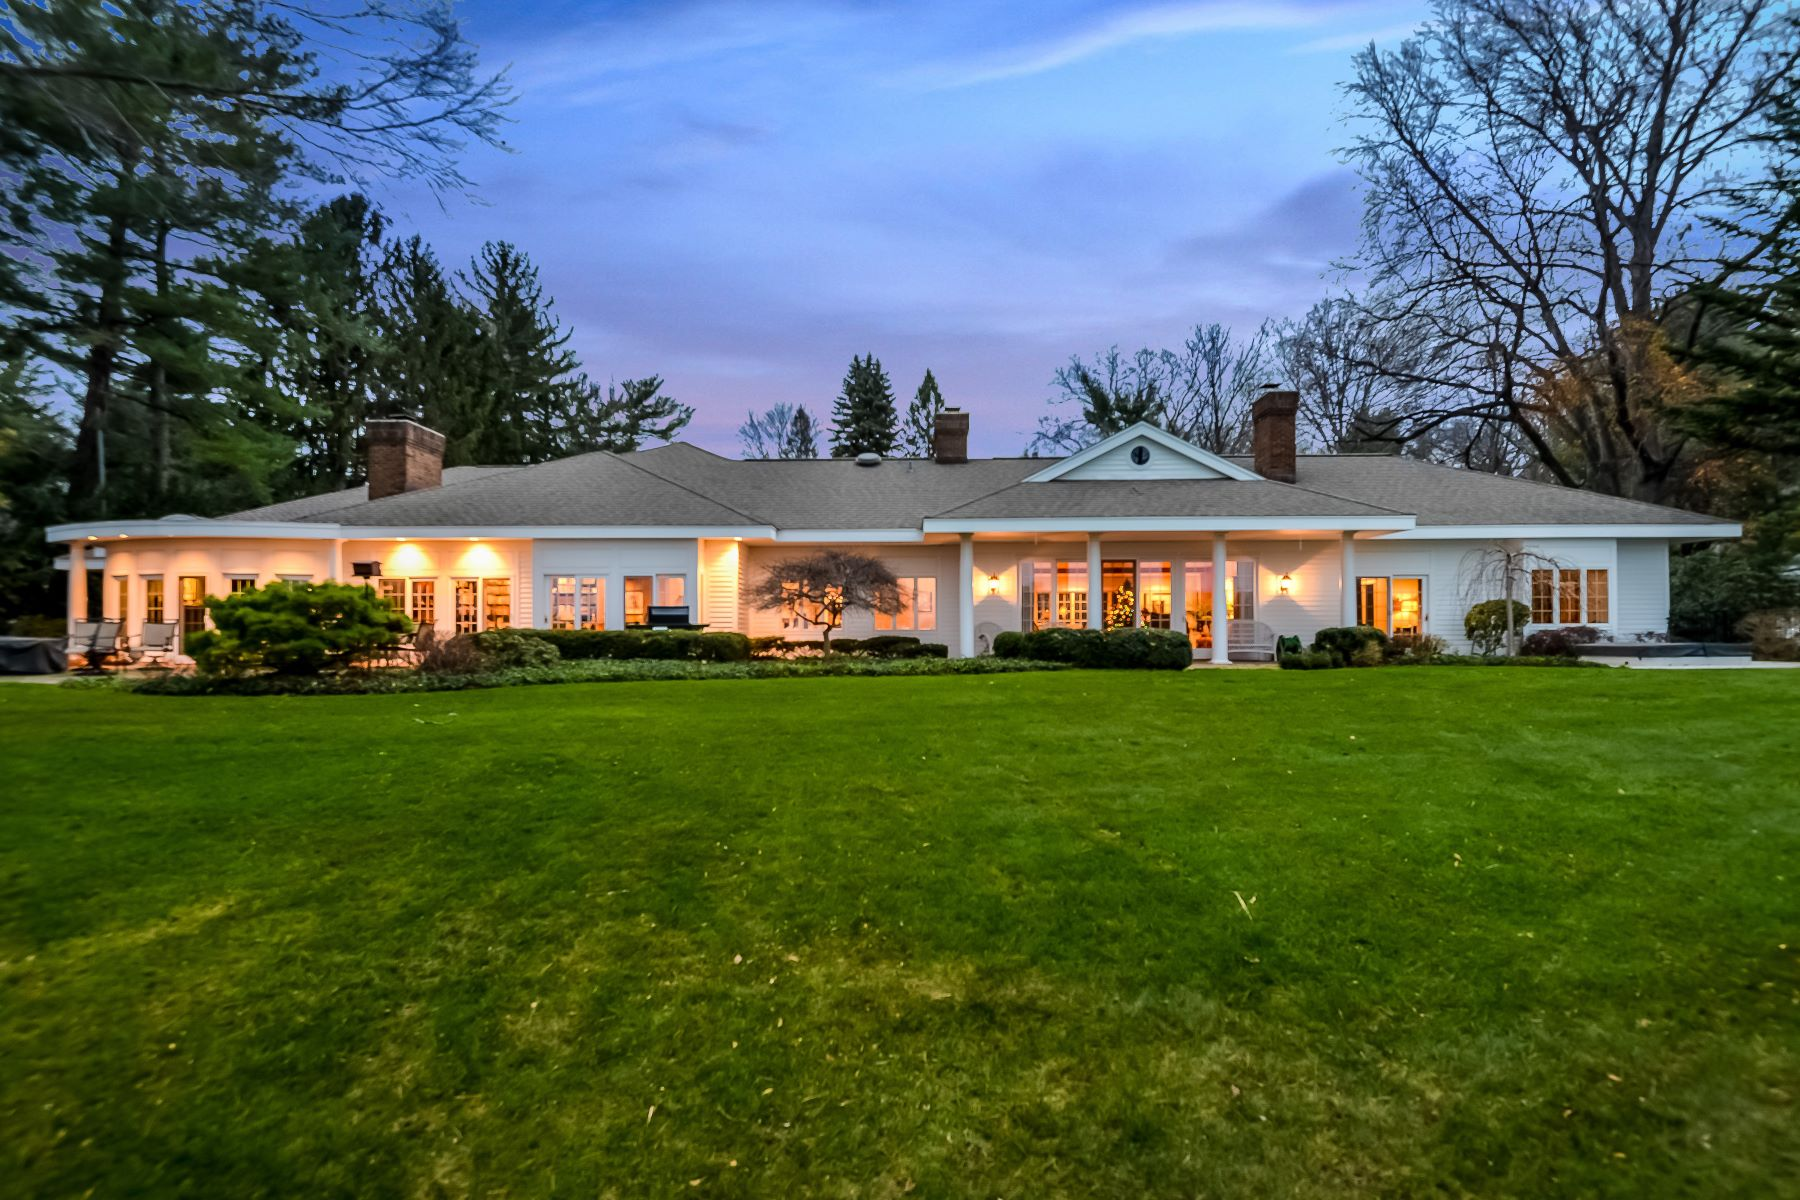 Single Family Home for Sale at Exclusive Spring Lake Estate With Incomparable Lake Michigan Views 2925 Judson Road Spring Lake, Michigan 49456 United States